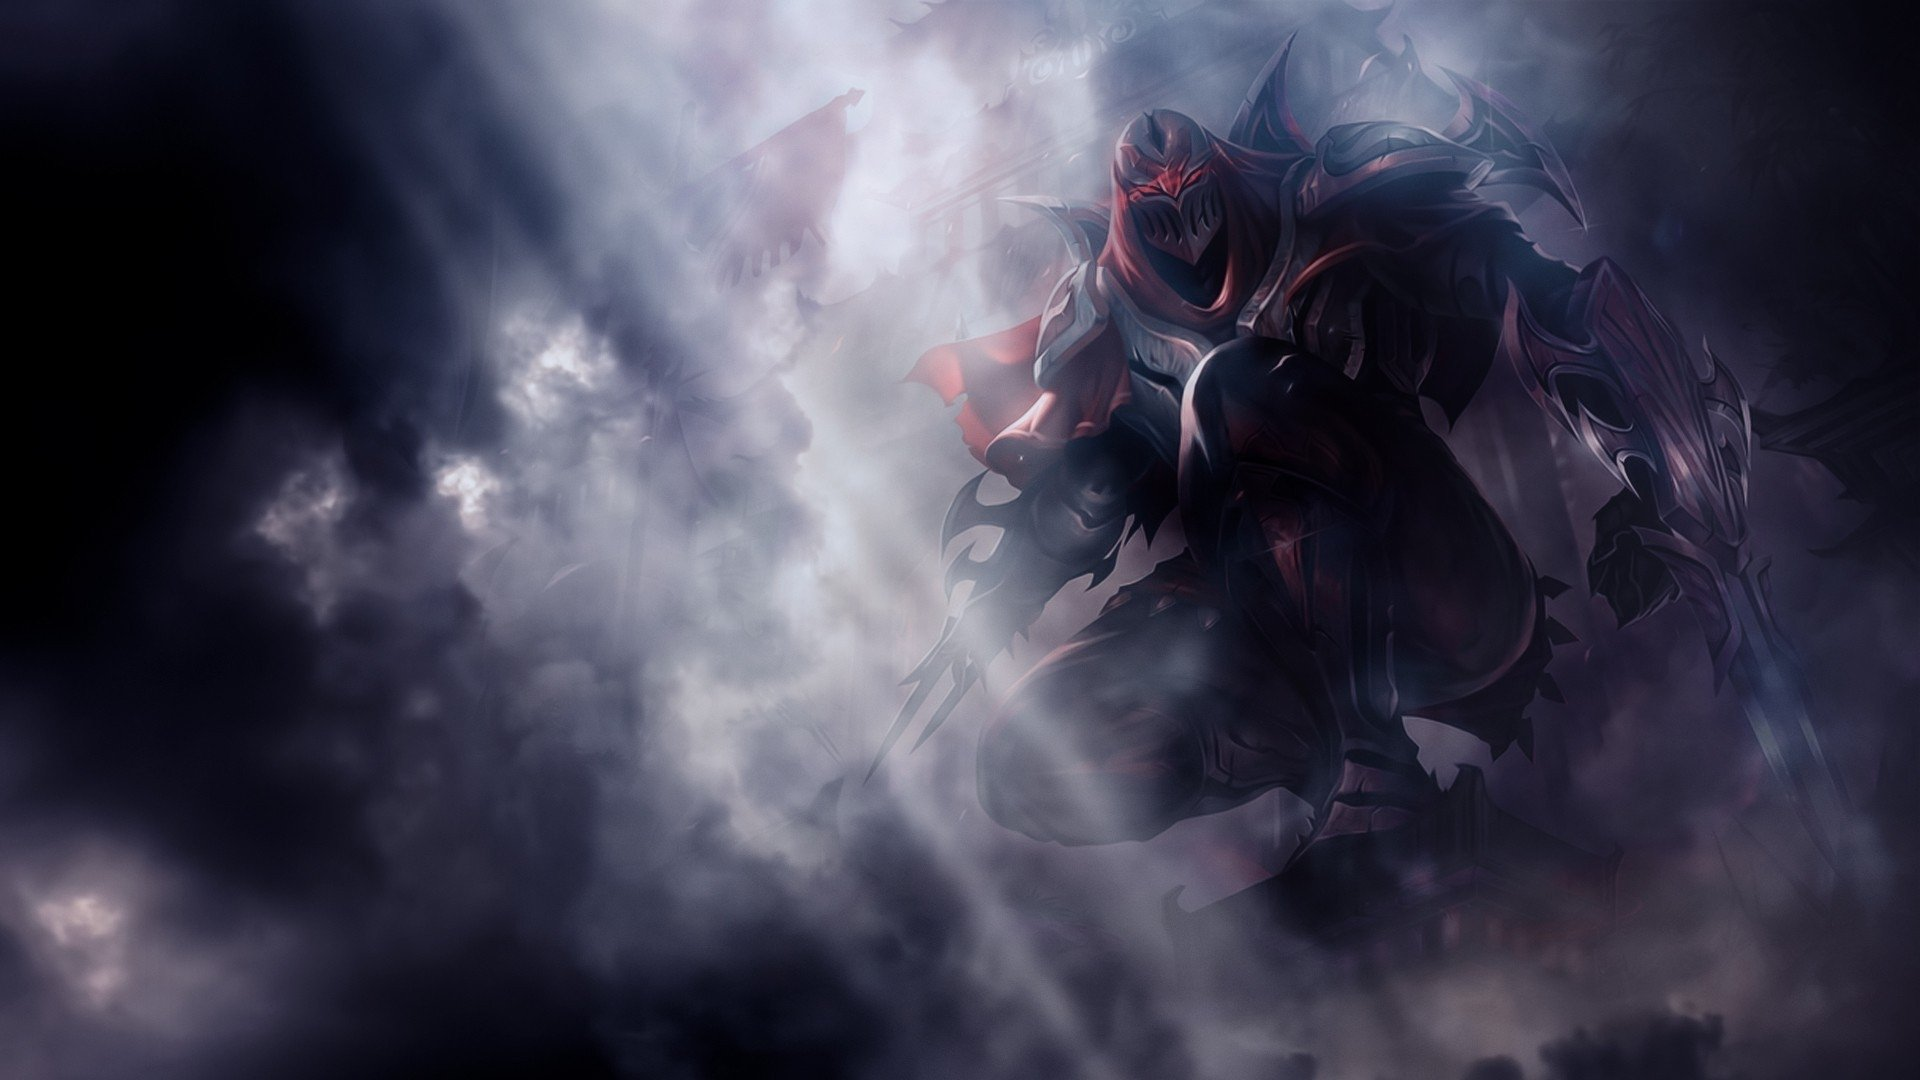 67 Zed League Of Legends Fondos De Pantalla Hd Fondos De